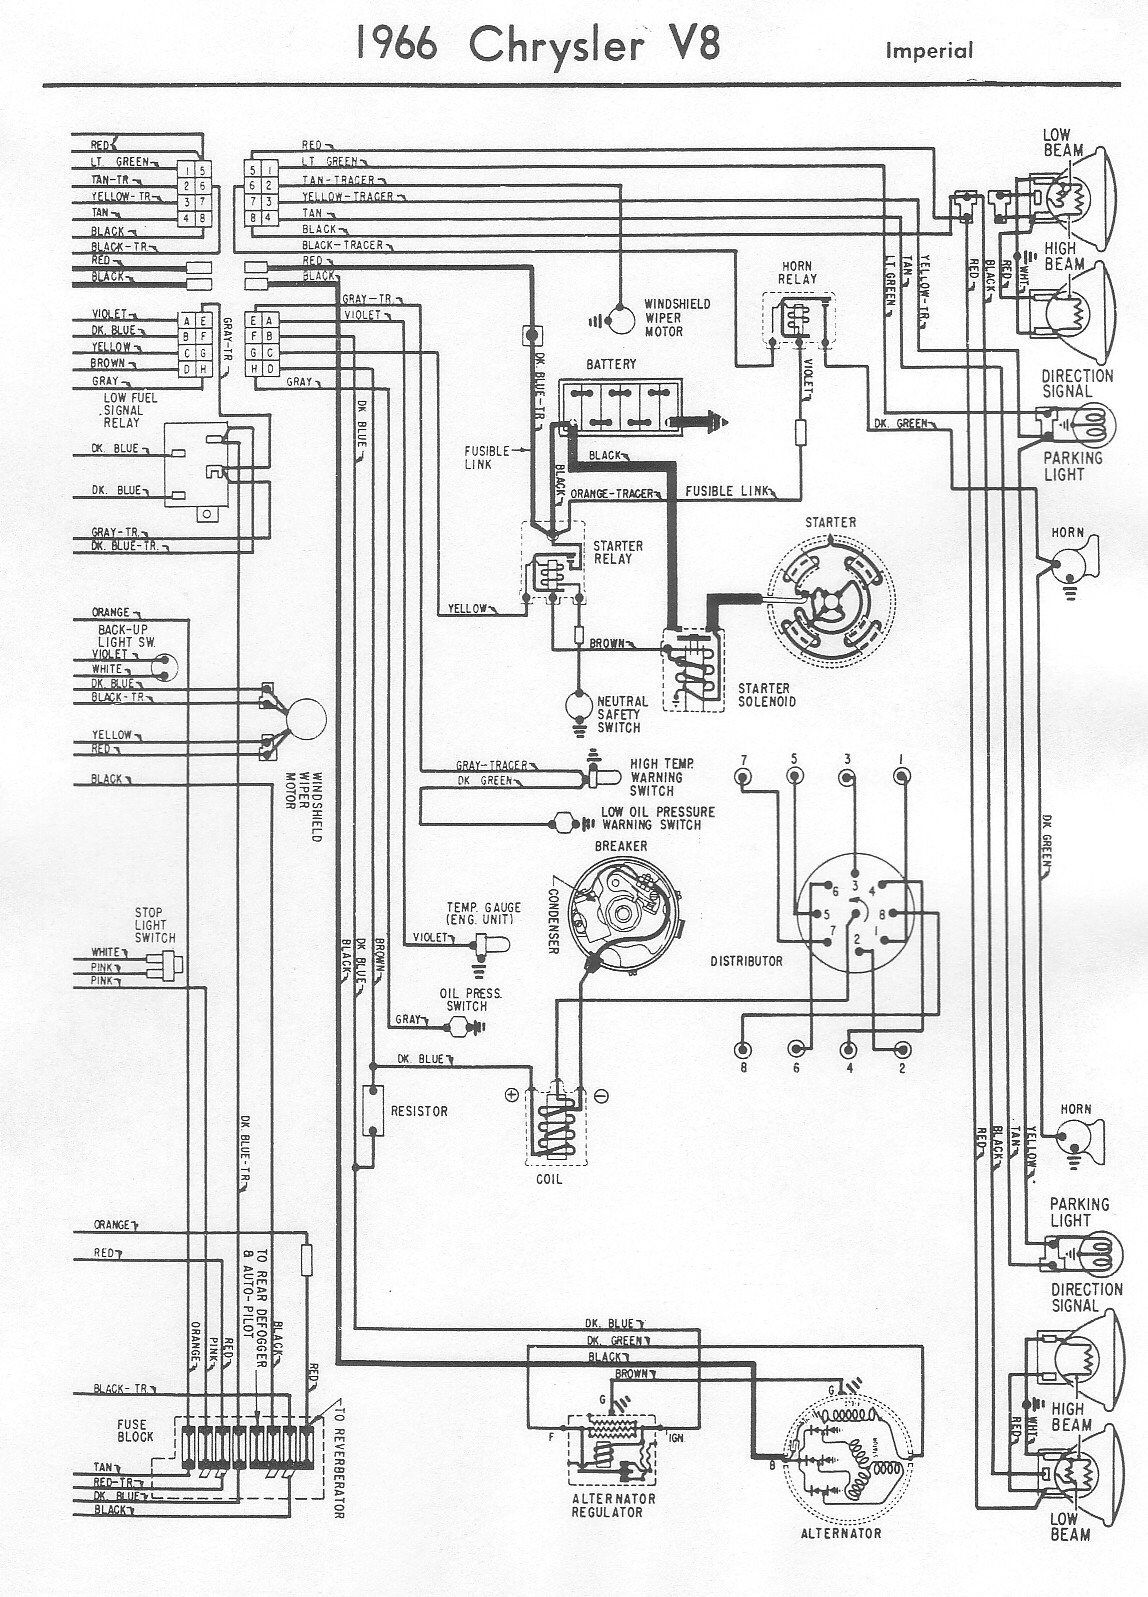 Bluebird Wiring Diagram Library 1996 Nissan Altima Related Keywords Suggestions 85 Camaro Dash Schematic Auto Electrical 1966 Chevrolet Truck